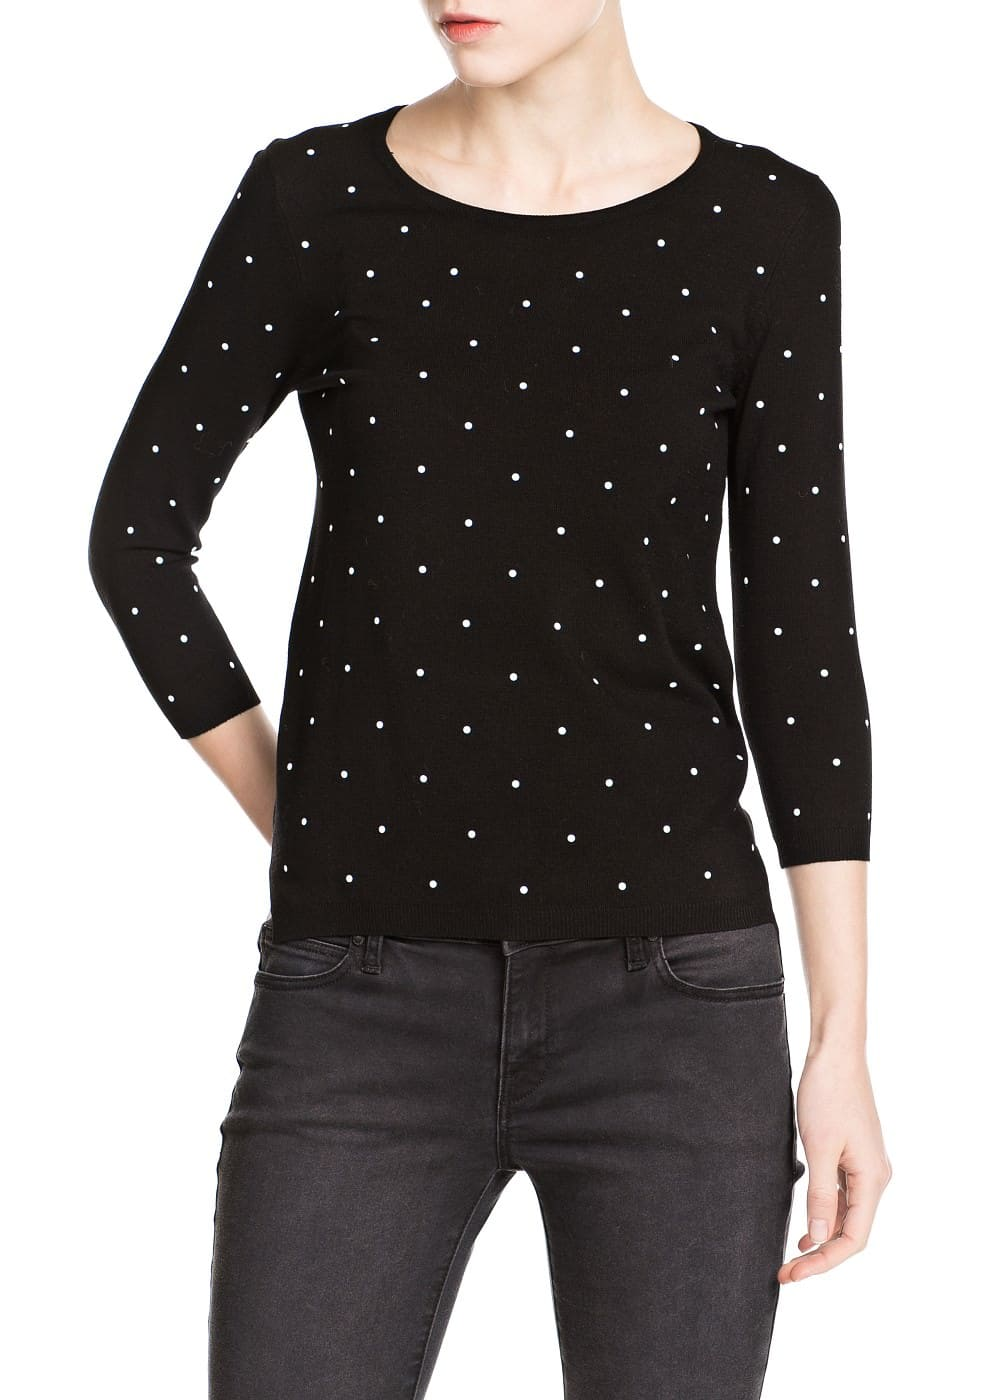 Shop eBay for great deals on Polka Dot Sweaters for Women. You'll find new or used products in Polka Dot Sweaters for Women on eBay. Free shipping on selected items.